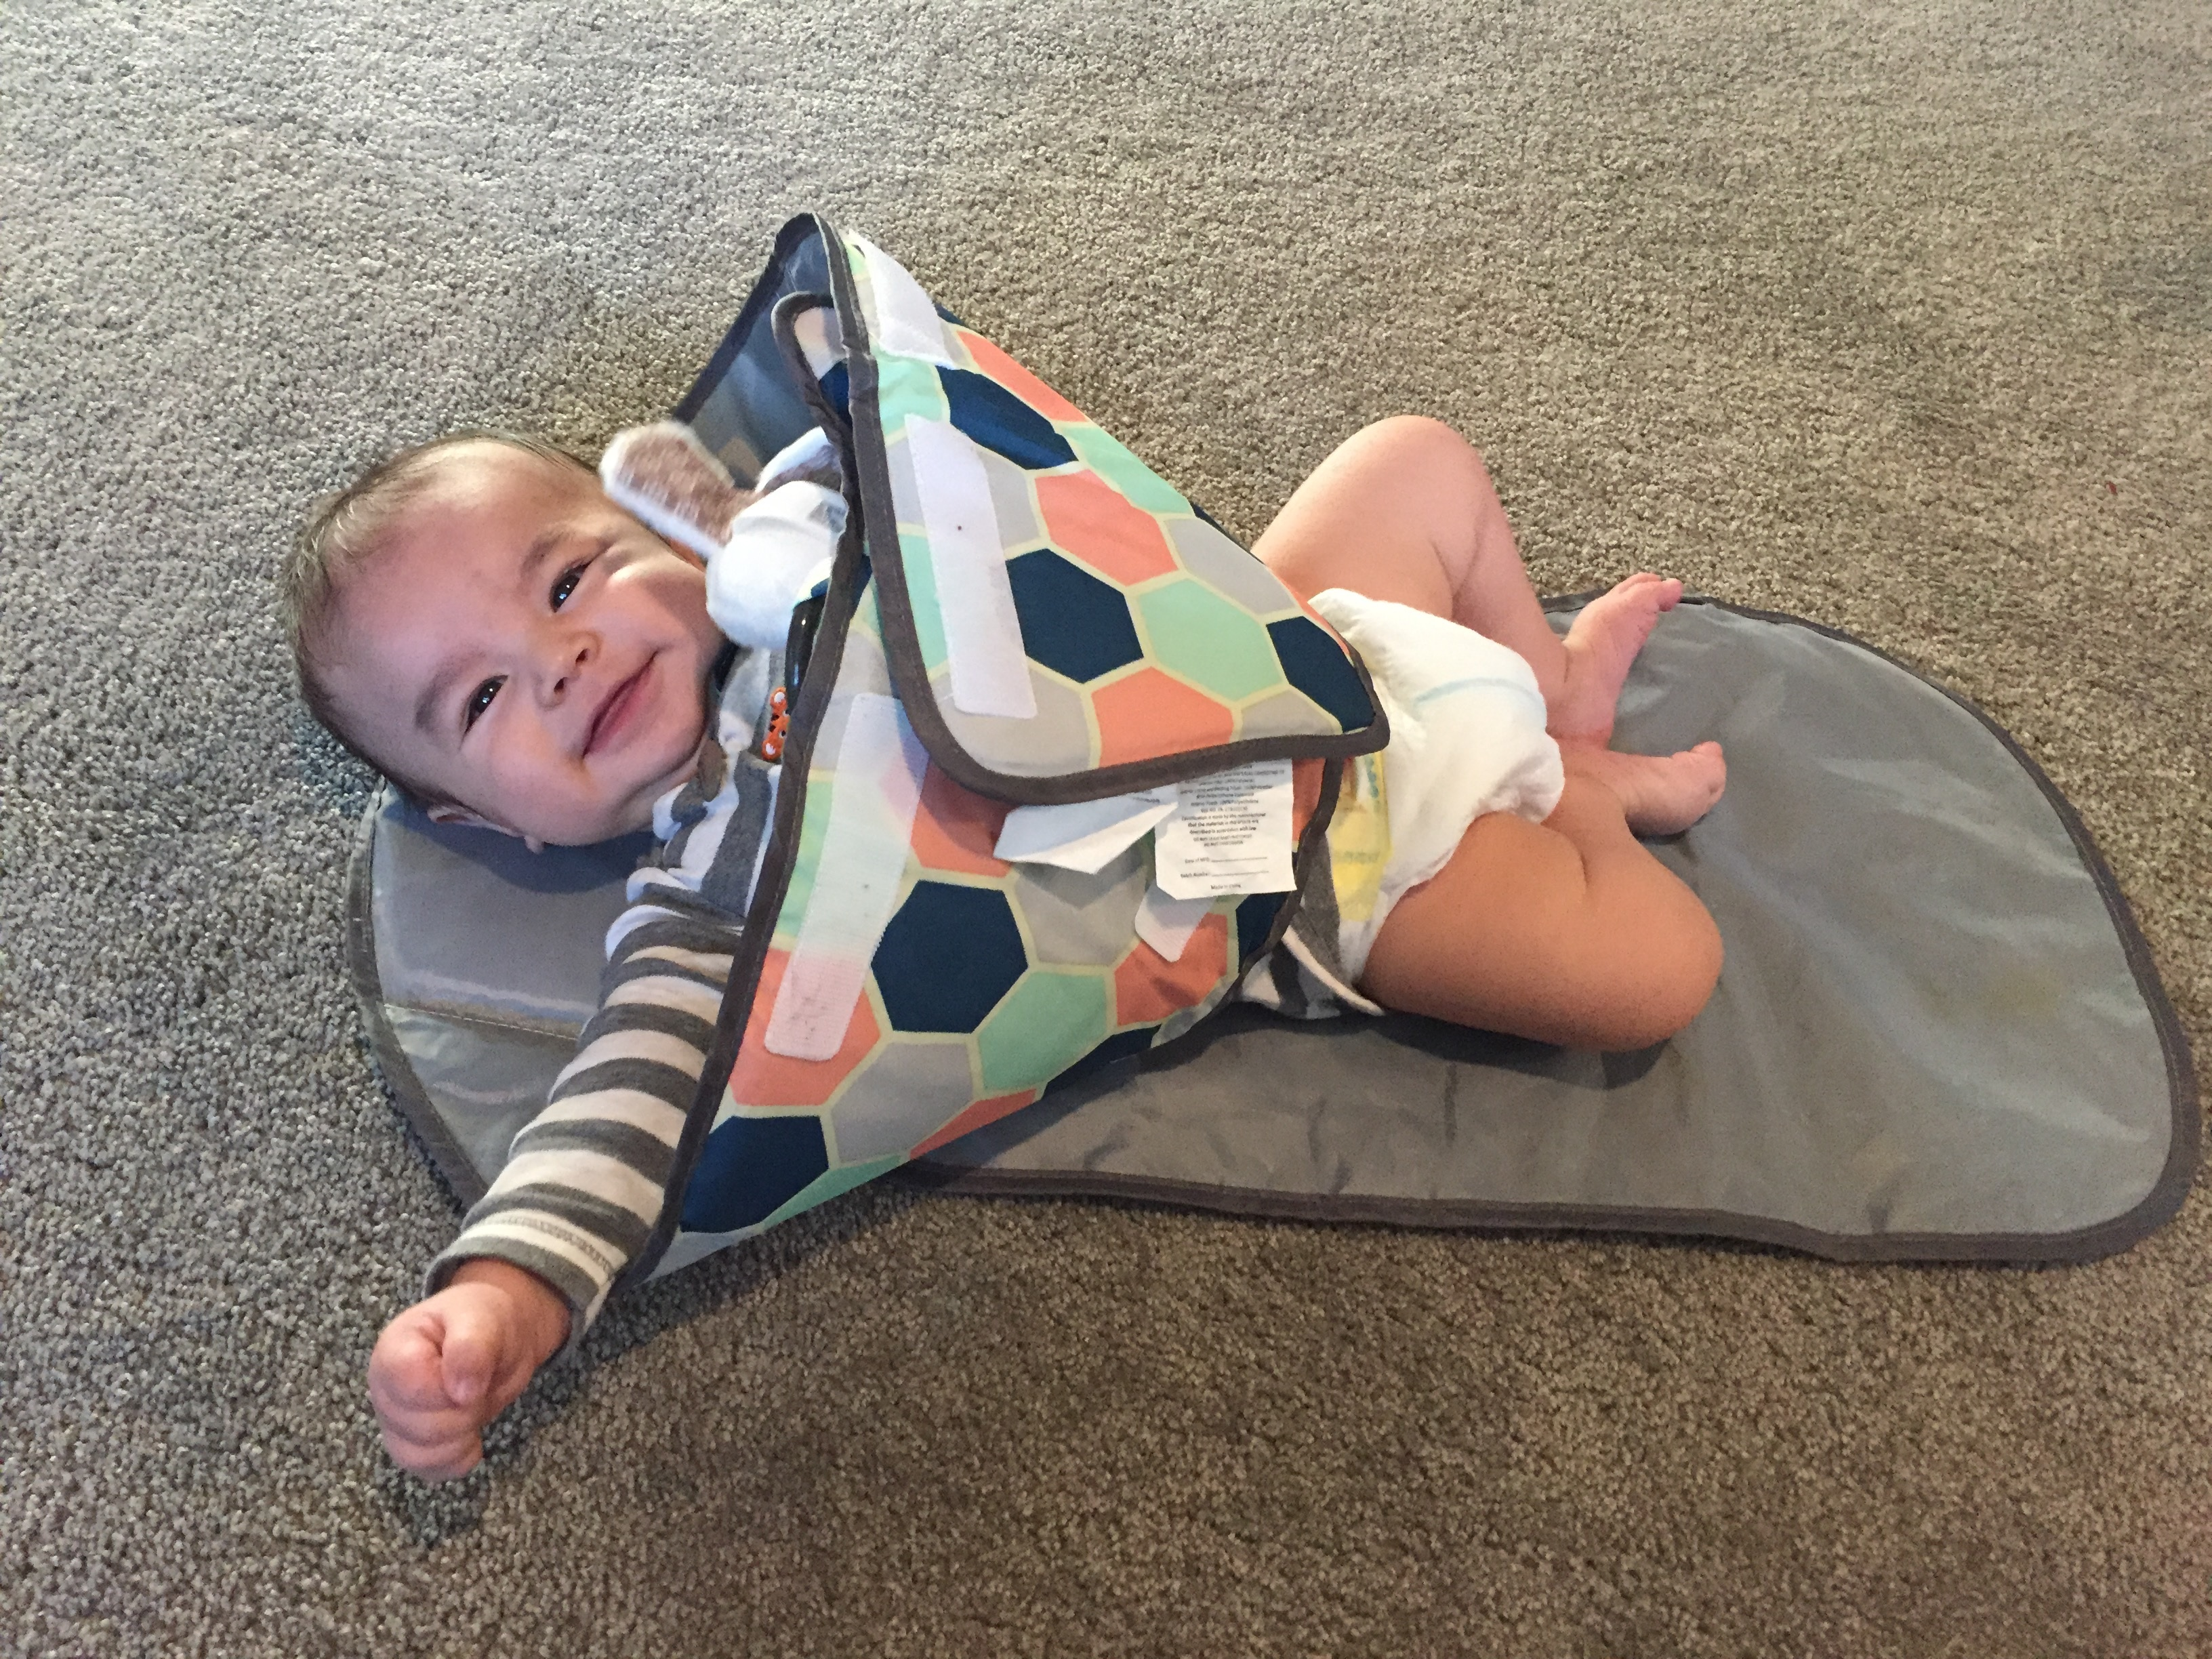 SnoofyBee Changing Pad is a must have baby product